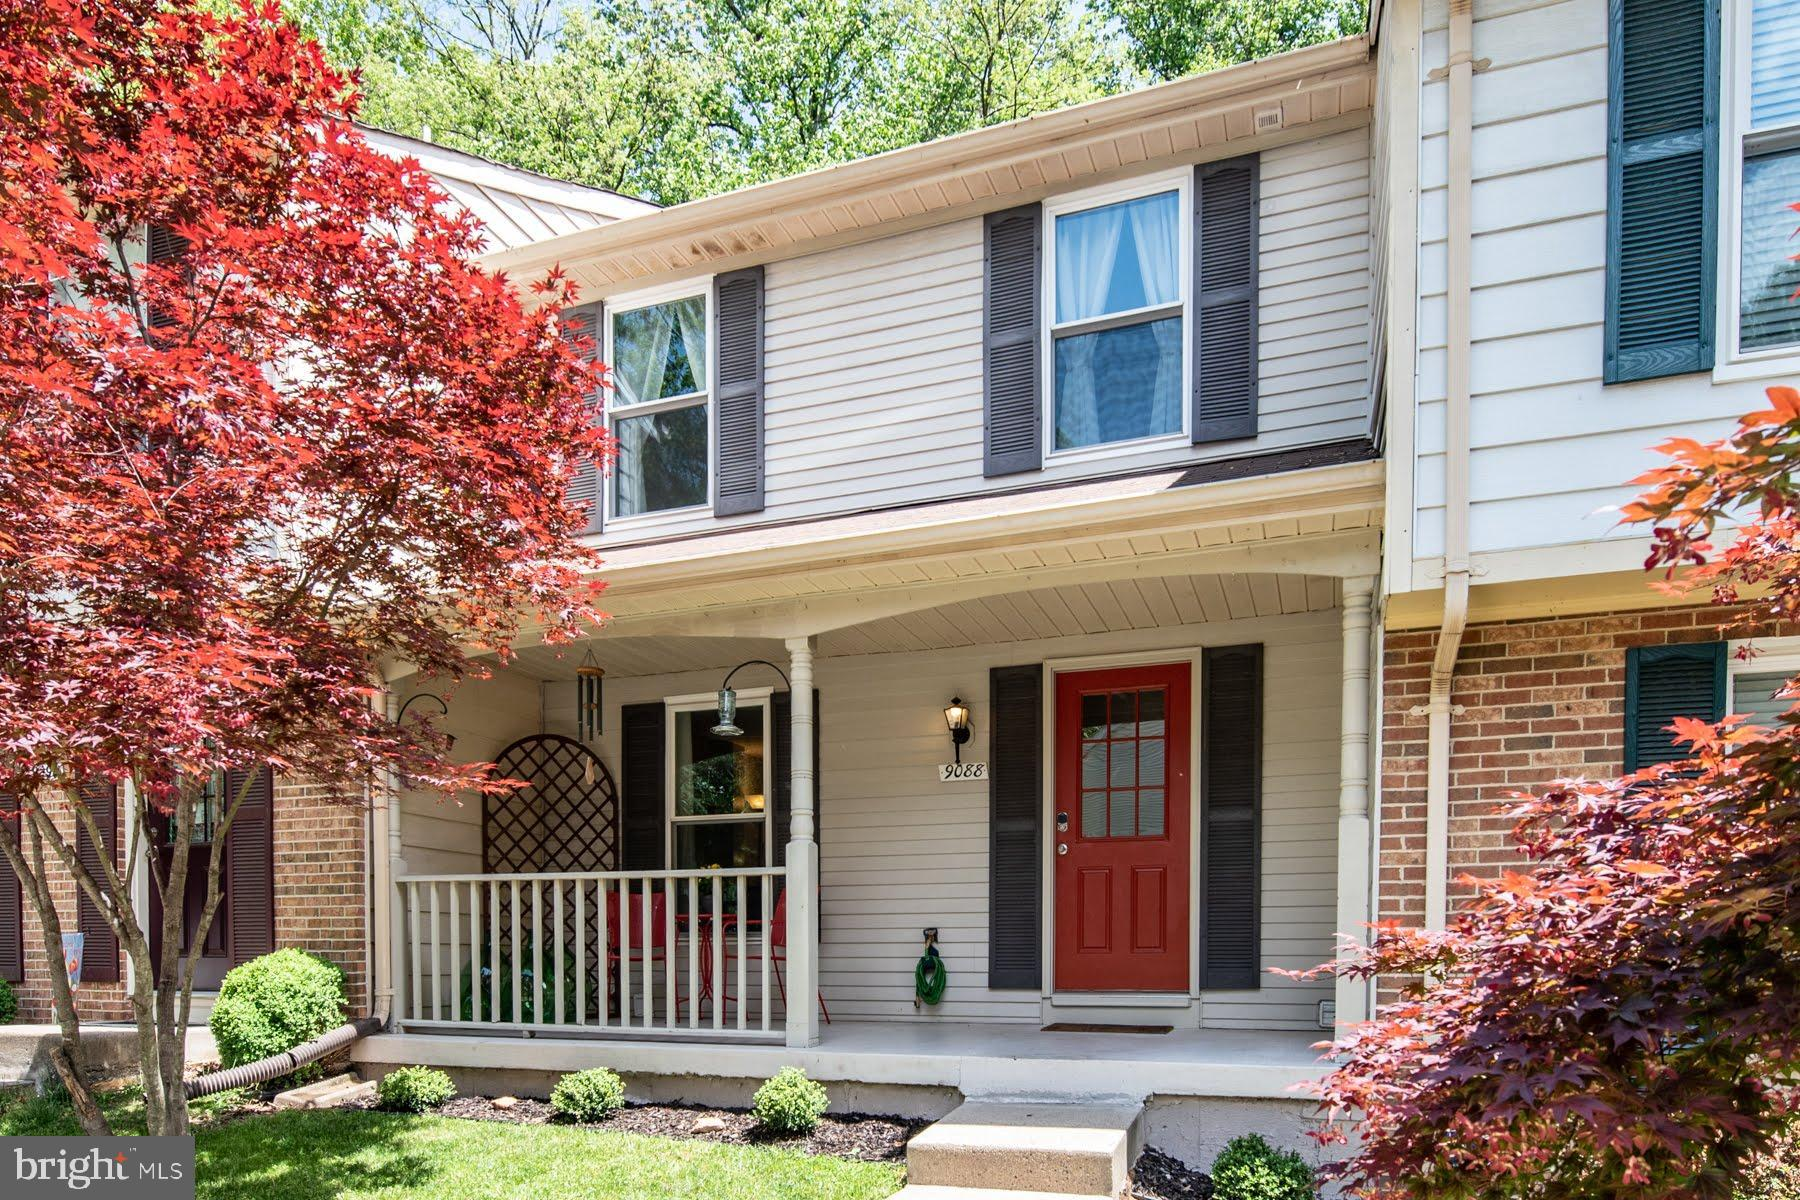 Welcome to this gorgeous 3 bedroom, 2 full and 2 half bath home is in a great location and with lots of upgrades. This home is situated close to I-395/495, the Fairfax County Parkway, a host of commuter options, nearby parks, and high-quality retail at Springfield Mall. Enjoy the great flow from the living room at the entrance to the all stainless steel, open eat-in kitchen. The upgraded Kitchen features granite countertops, new cabinets, and Stainless steel appliances. The upper level includes three bedrooms and two full baths with a full Master Bedroom suite.Other highlights include a large, finished basement, wood floors, new carpet, and minutes distance to commuter slug line! Bright, spacious and move in ready, this home is a gem!Don't miss out on this beautiful home in the Old Keene Mill Village community.